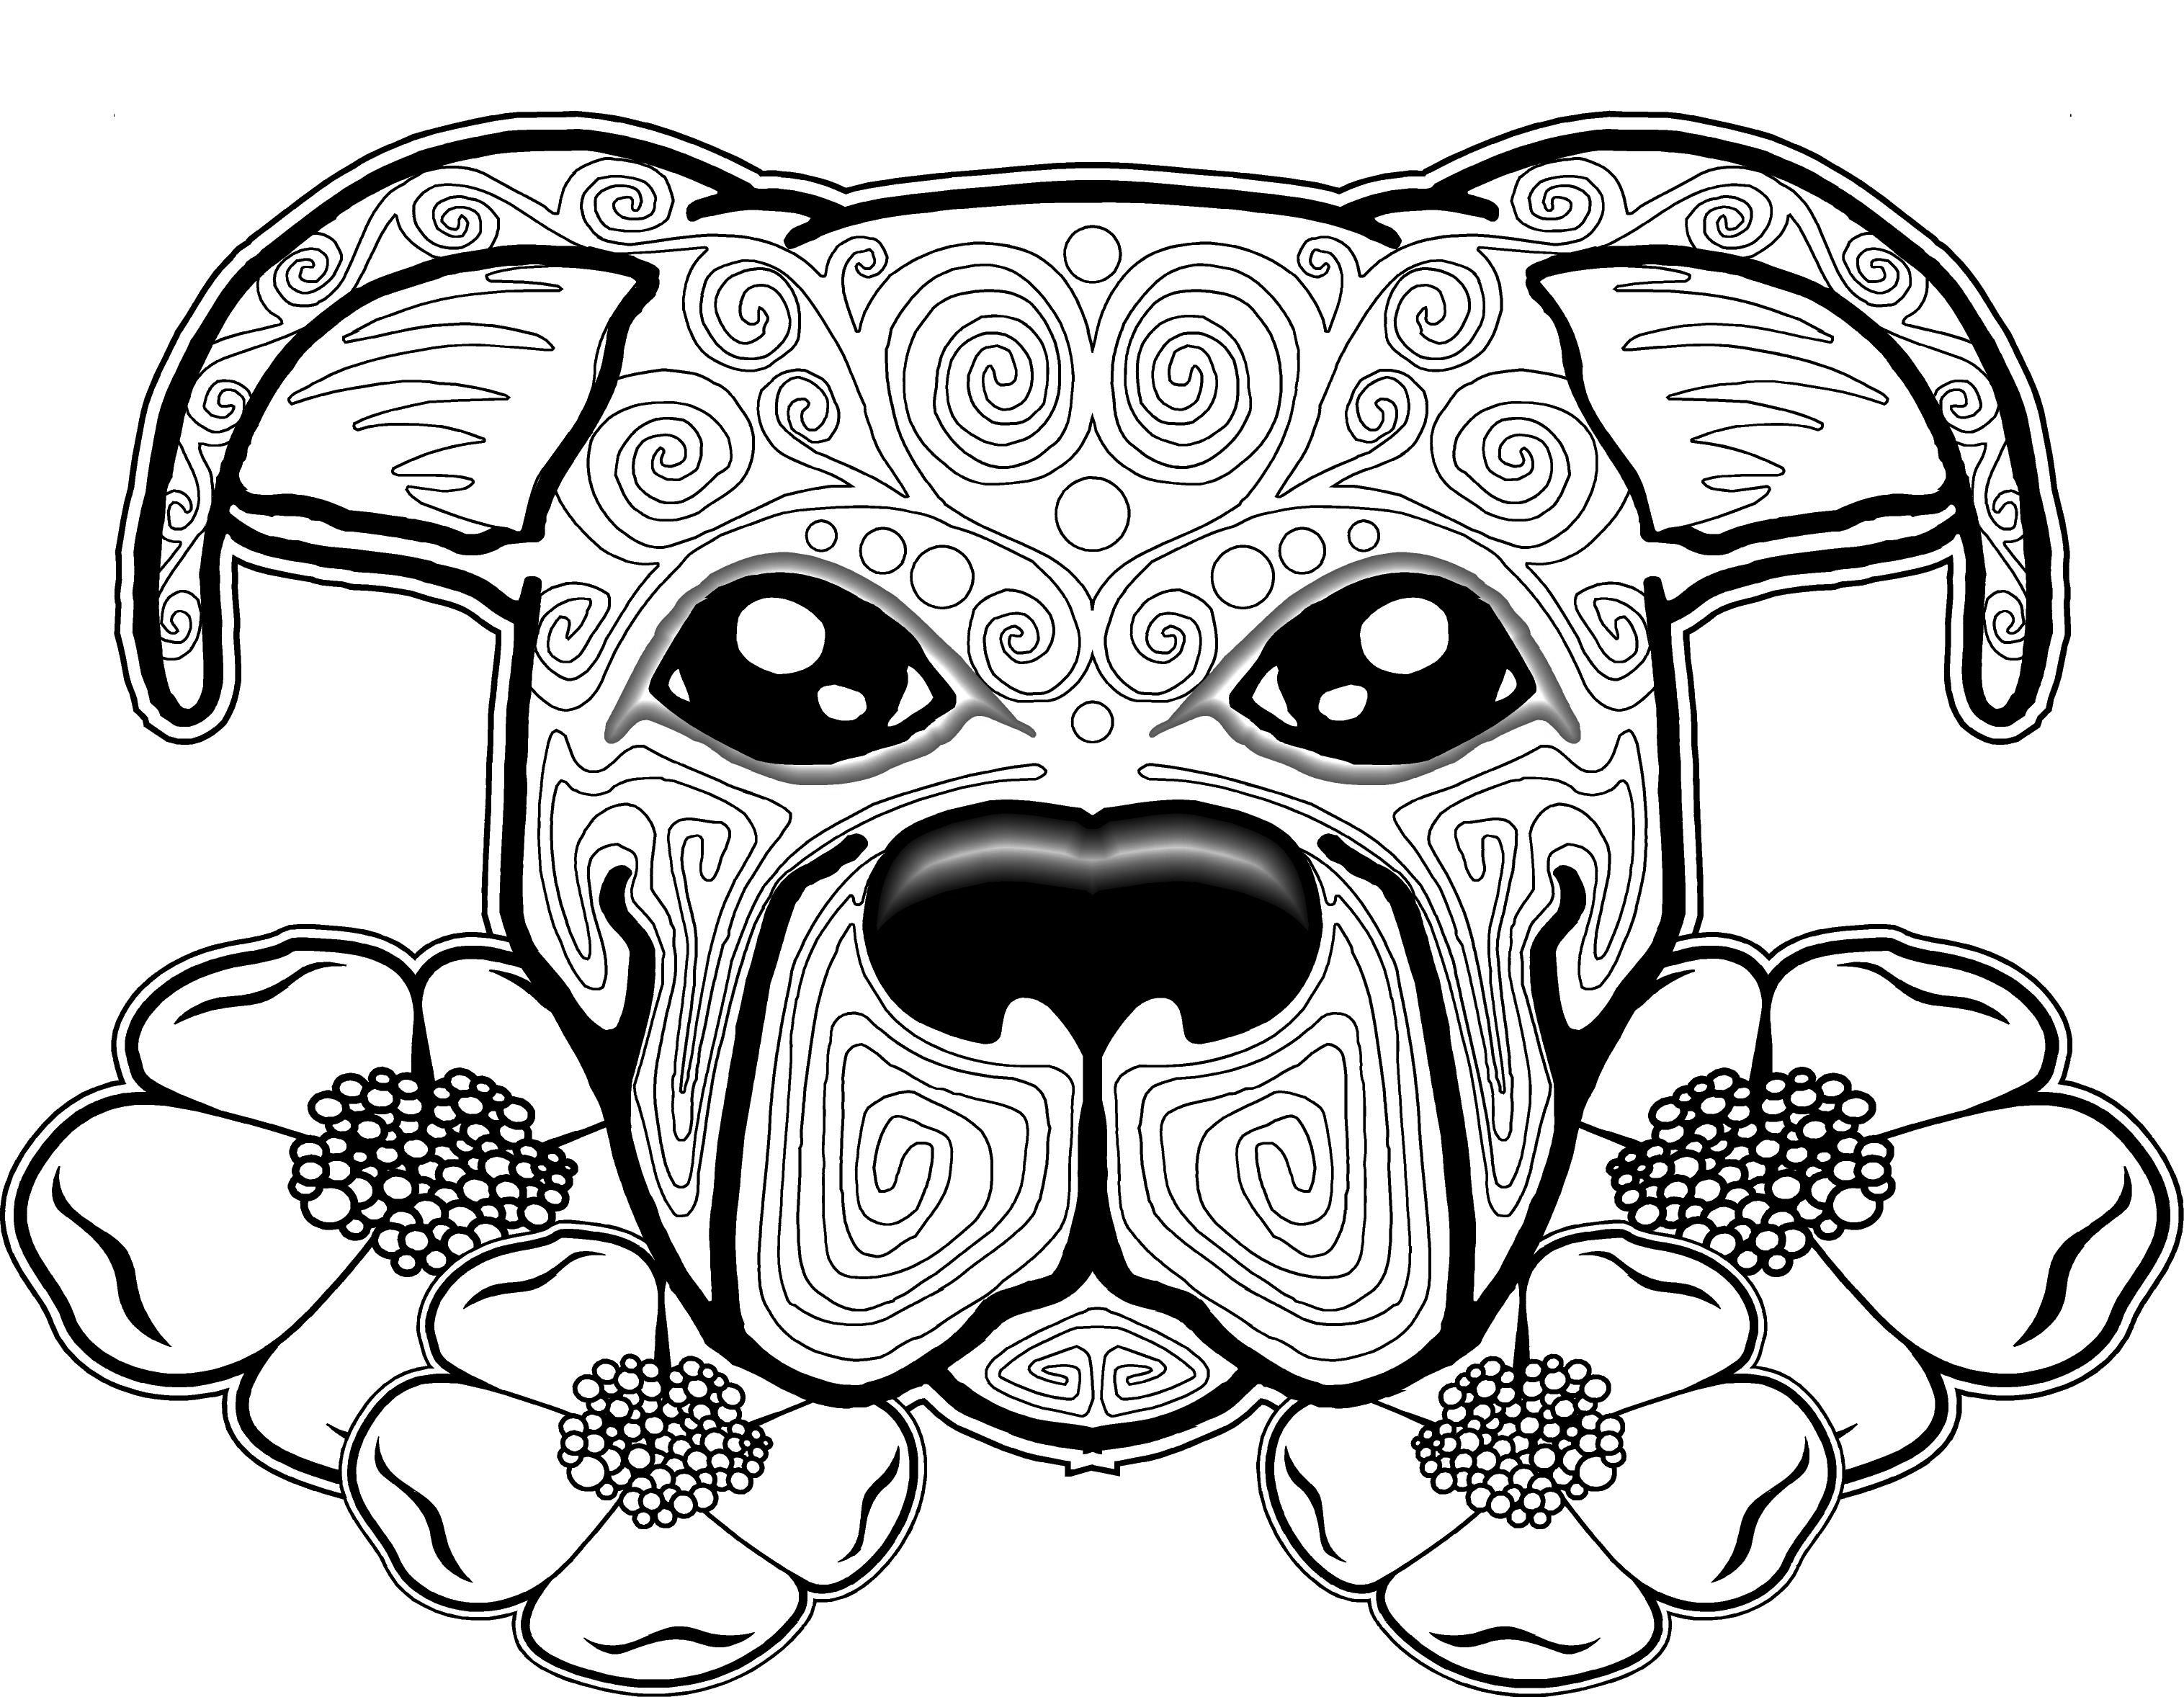 Free coloring pages sugar skulls - Dog Coloring Page Dog Coloring Pages Free Coloring Page Free Coloring Pages For